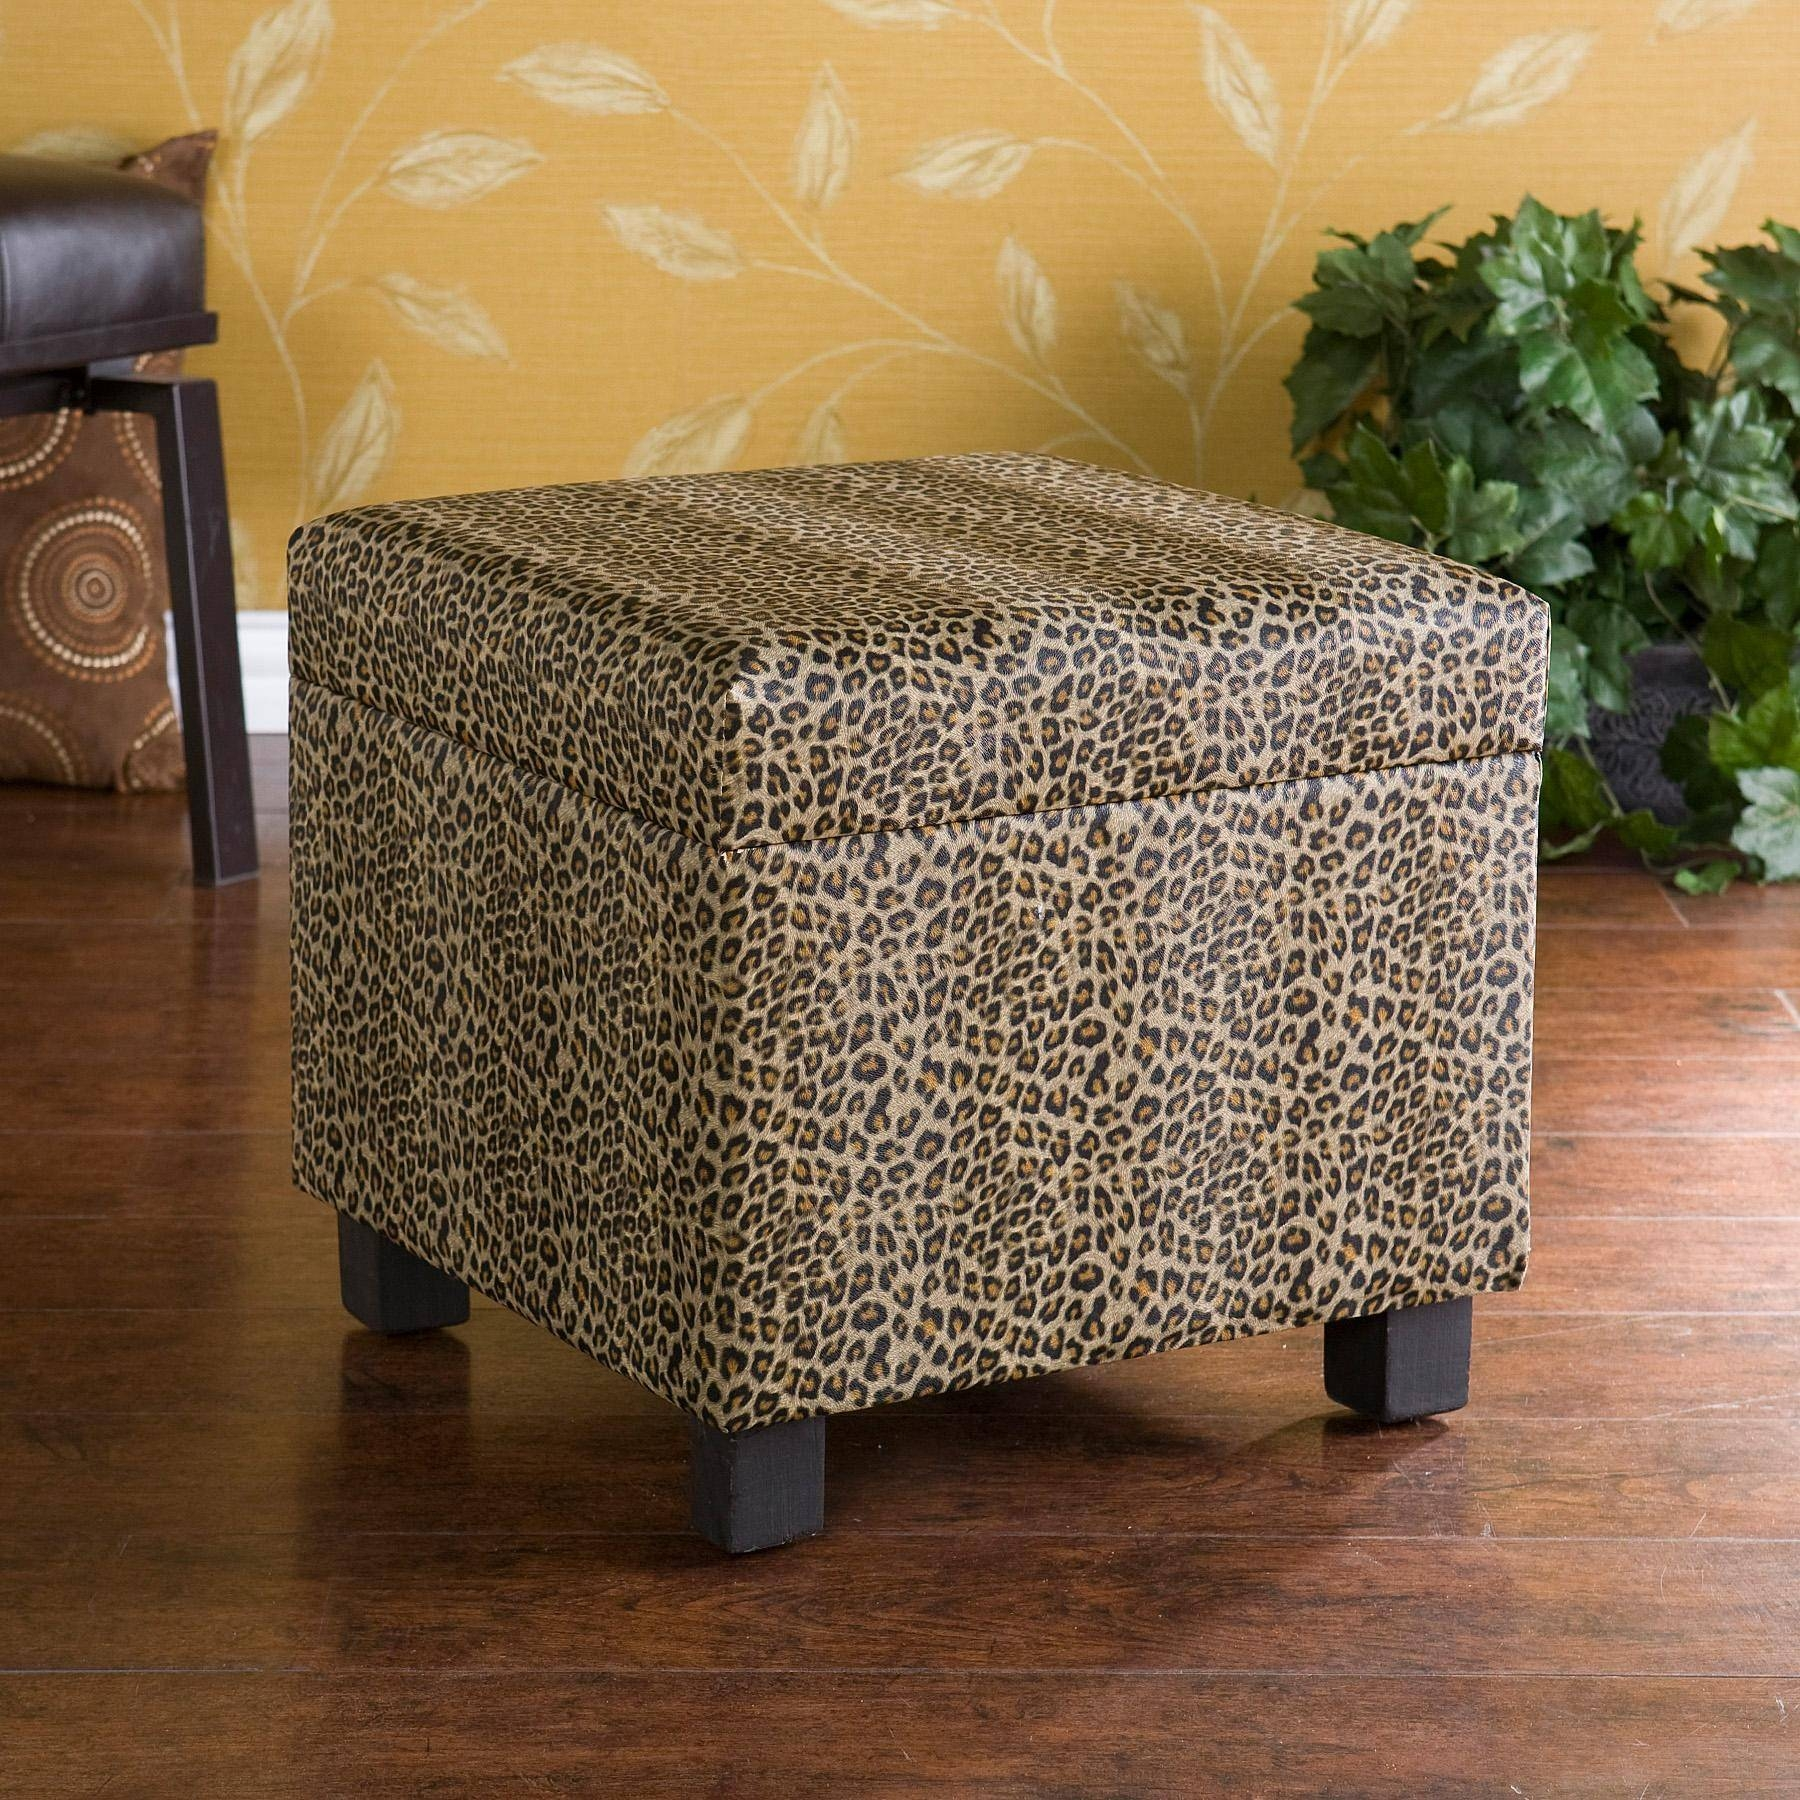 Leopard Print Ottoman Coffee Table - View Here — Coffee Tables Ideas intended for Leopard Ottoman Coffee Tables (Image 21 of 30)